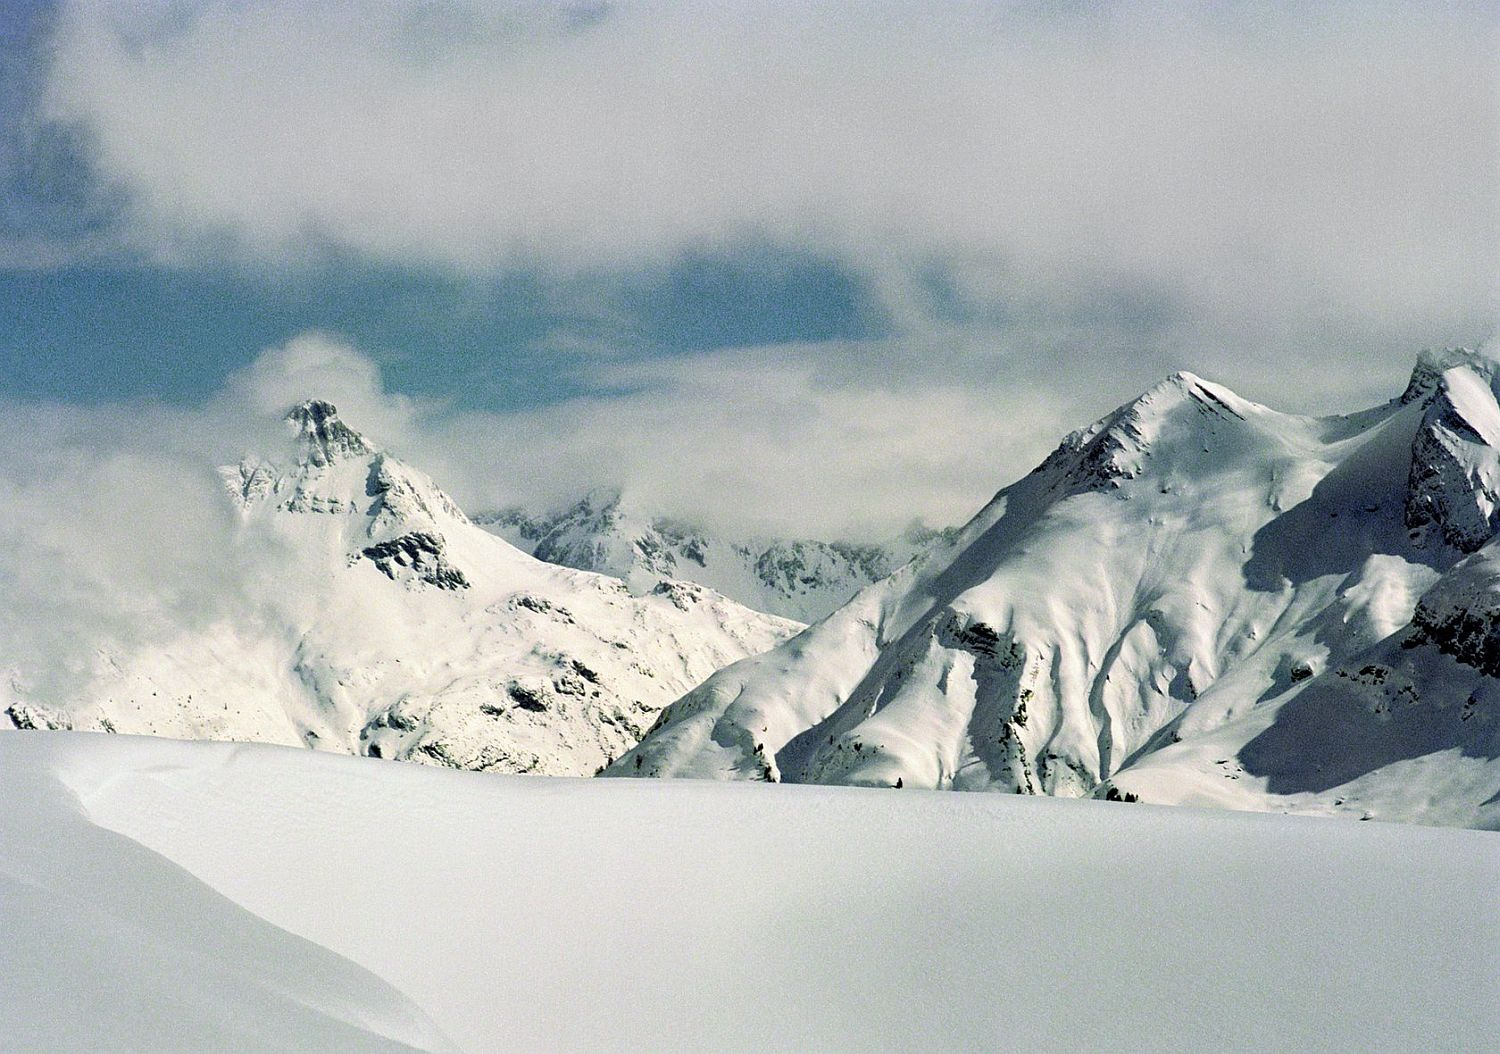 Stunning-views-of-the-Alps-and-snow-lad-slopes-from-Houtel-Aurelio-Lech